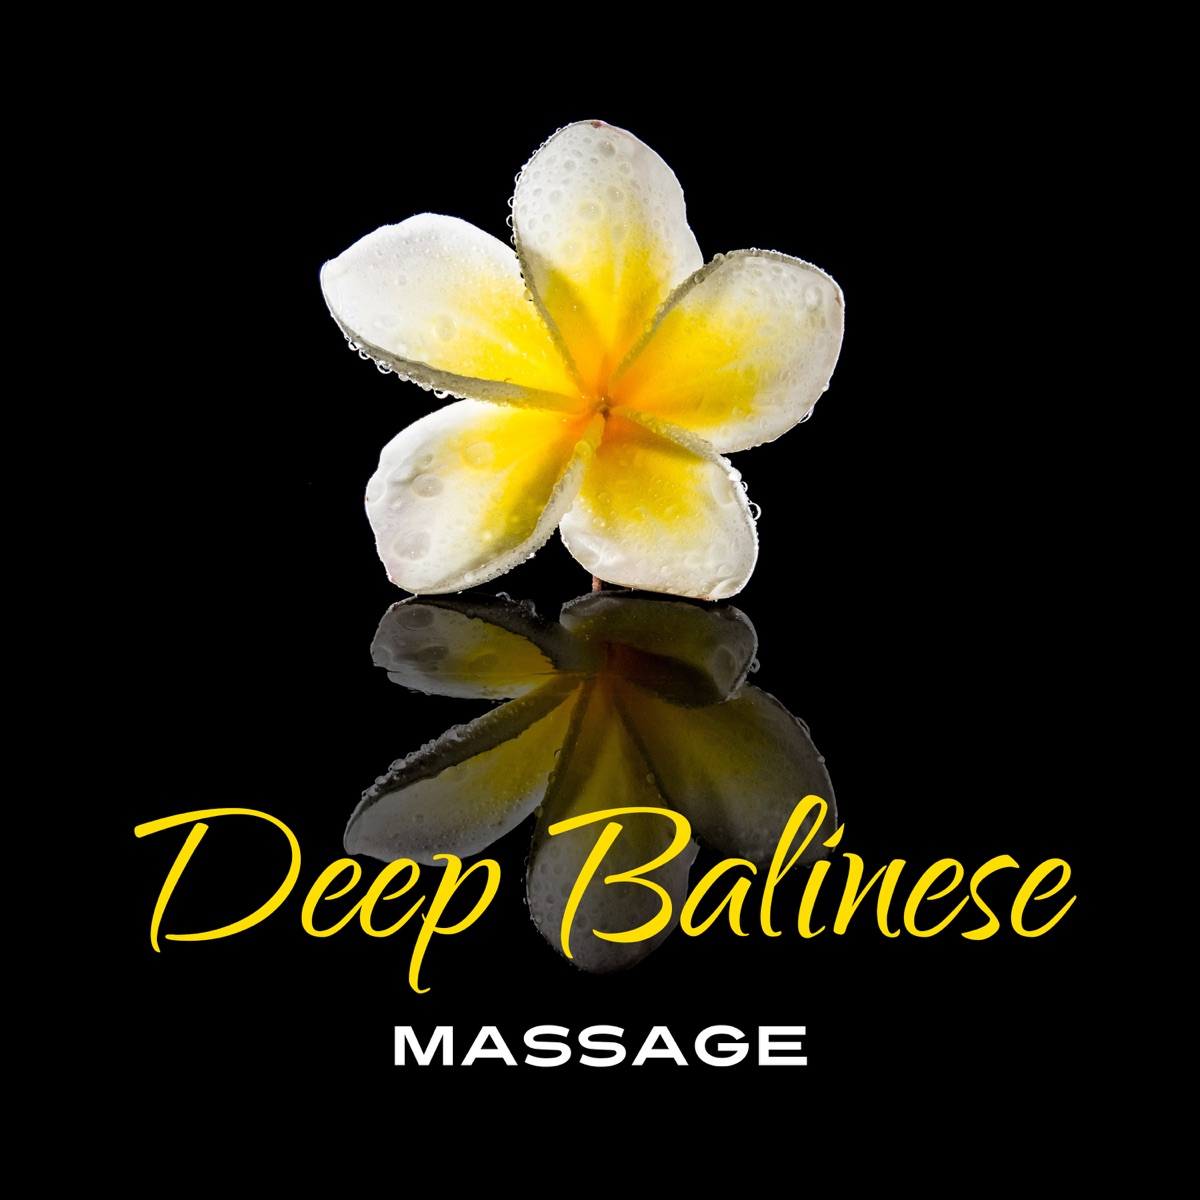 Deep Balinese Massage: 50 Oriental Tracks for Relaxation & Wellbeing